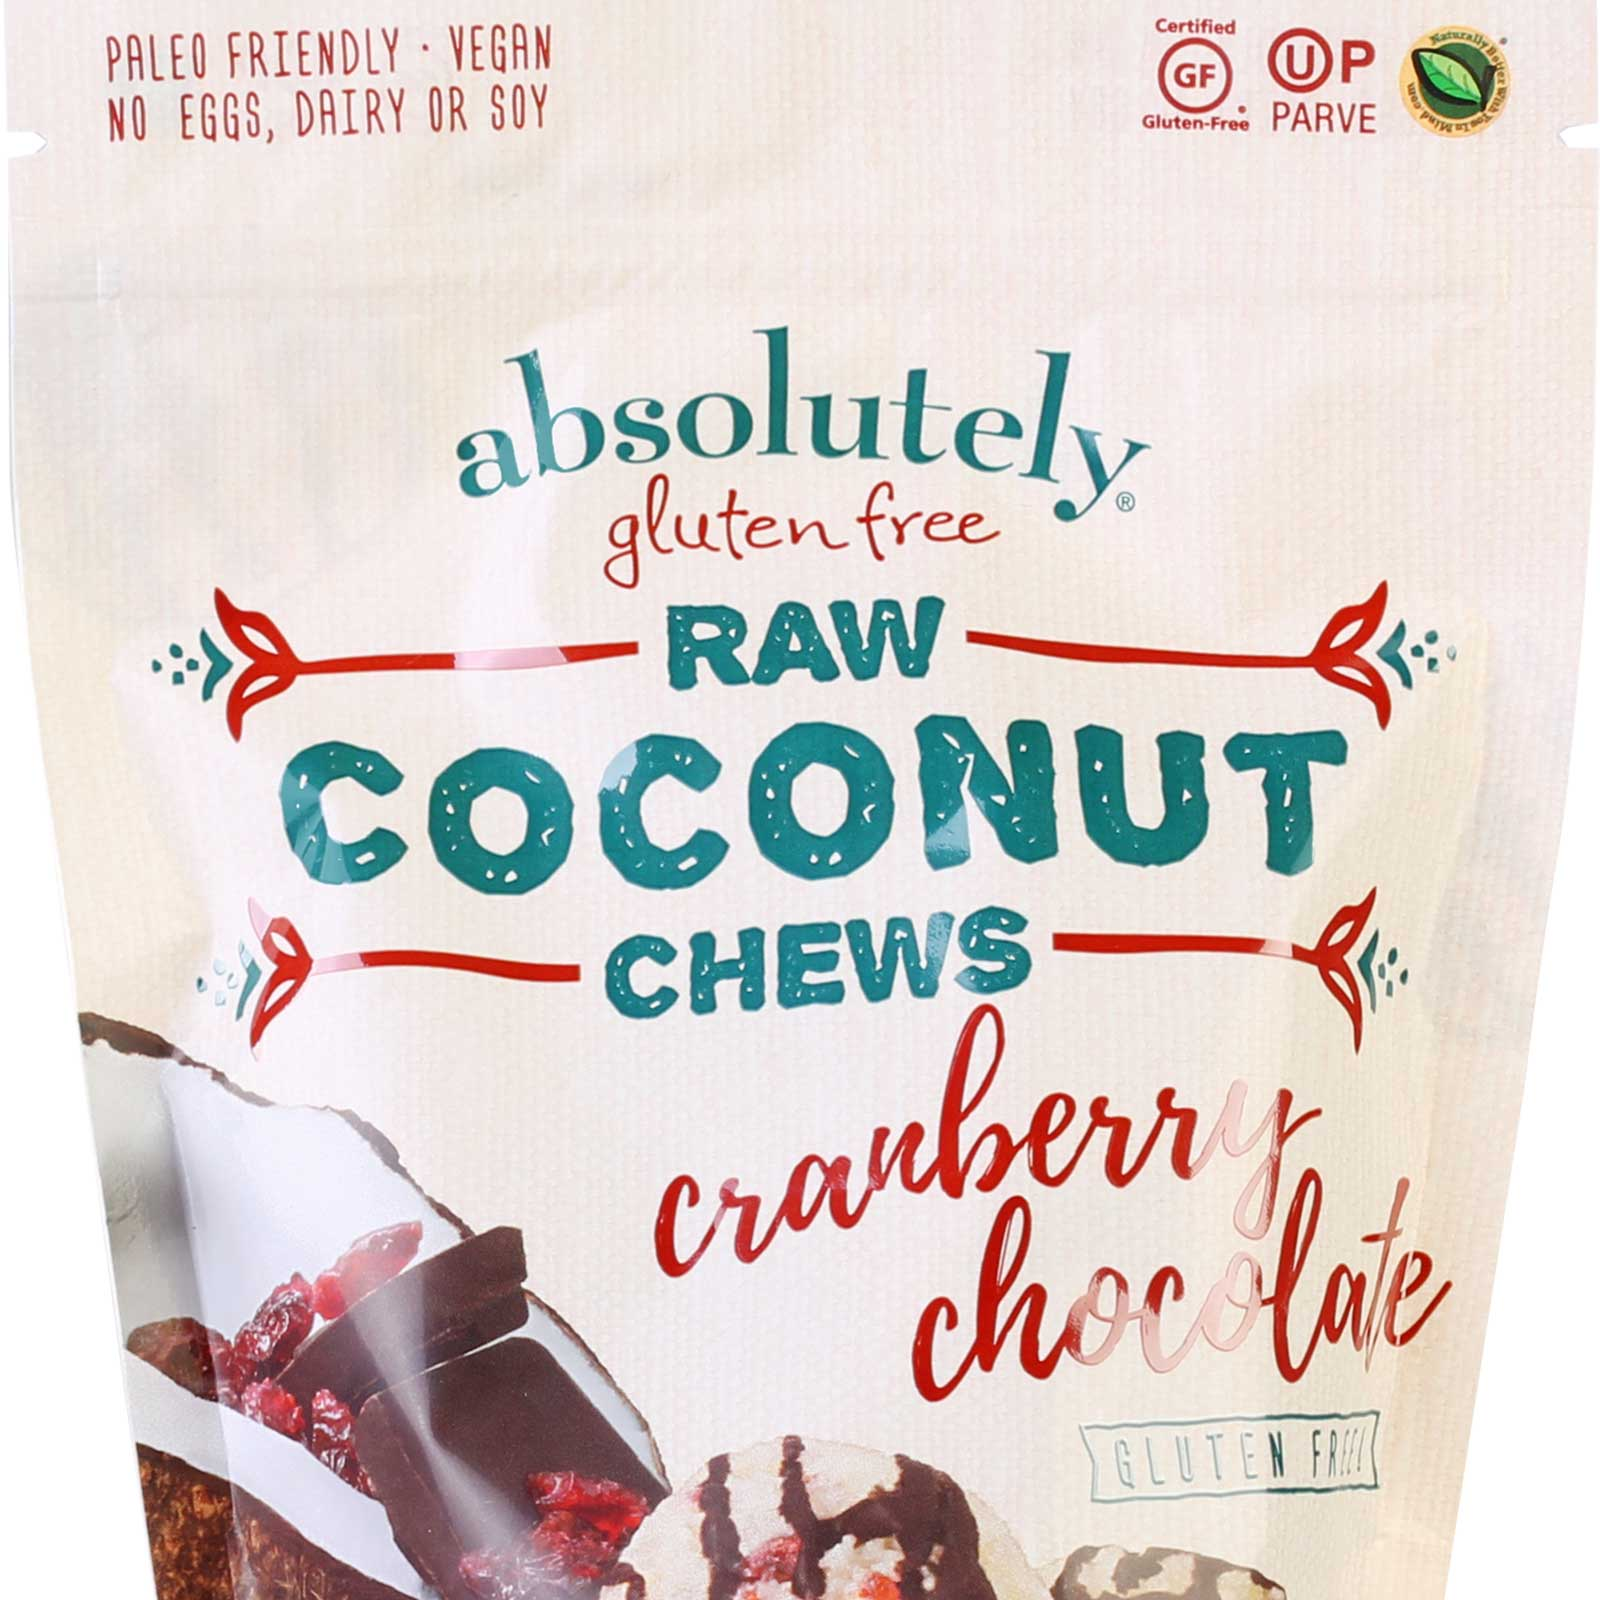 raw coconut chews cranberry